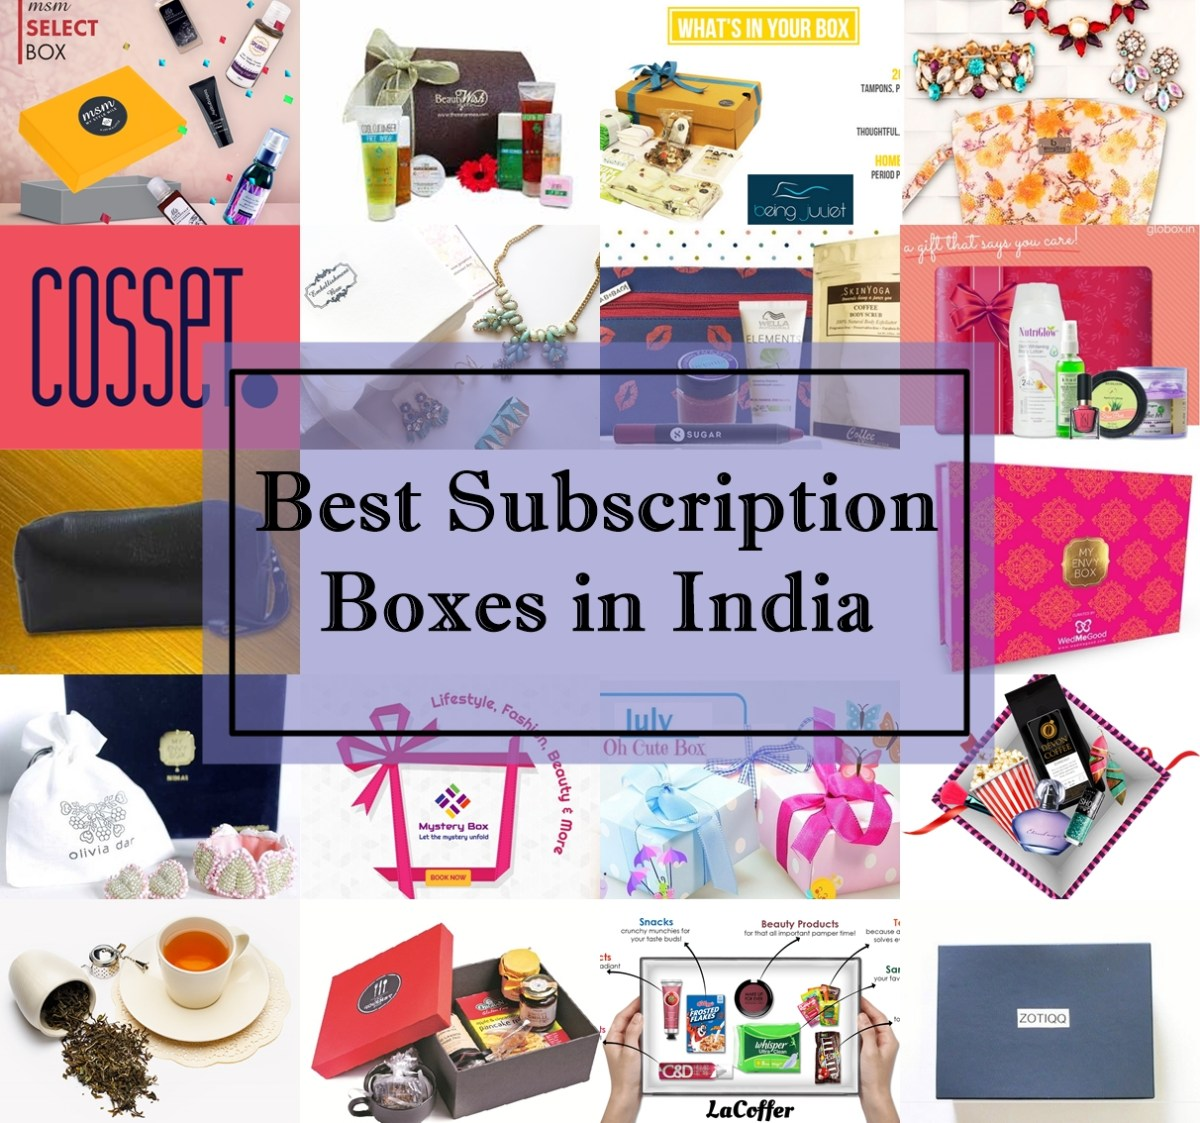 Best Subscription Boxes in India, Prices, Details